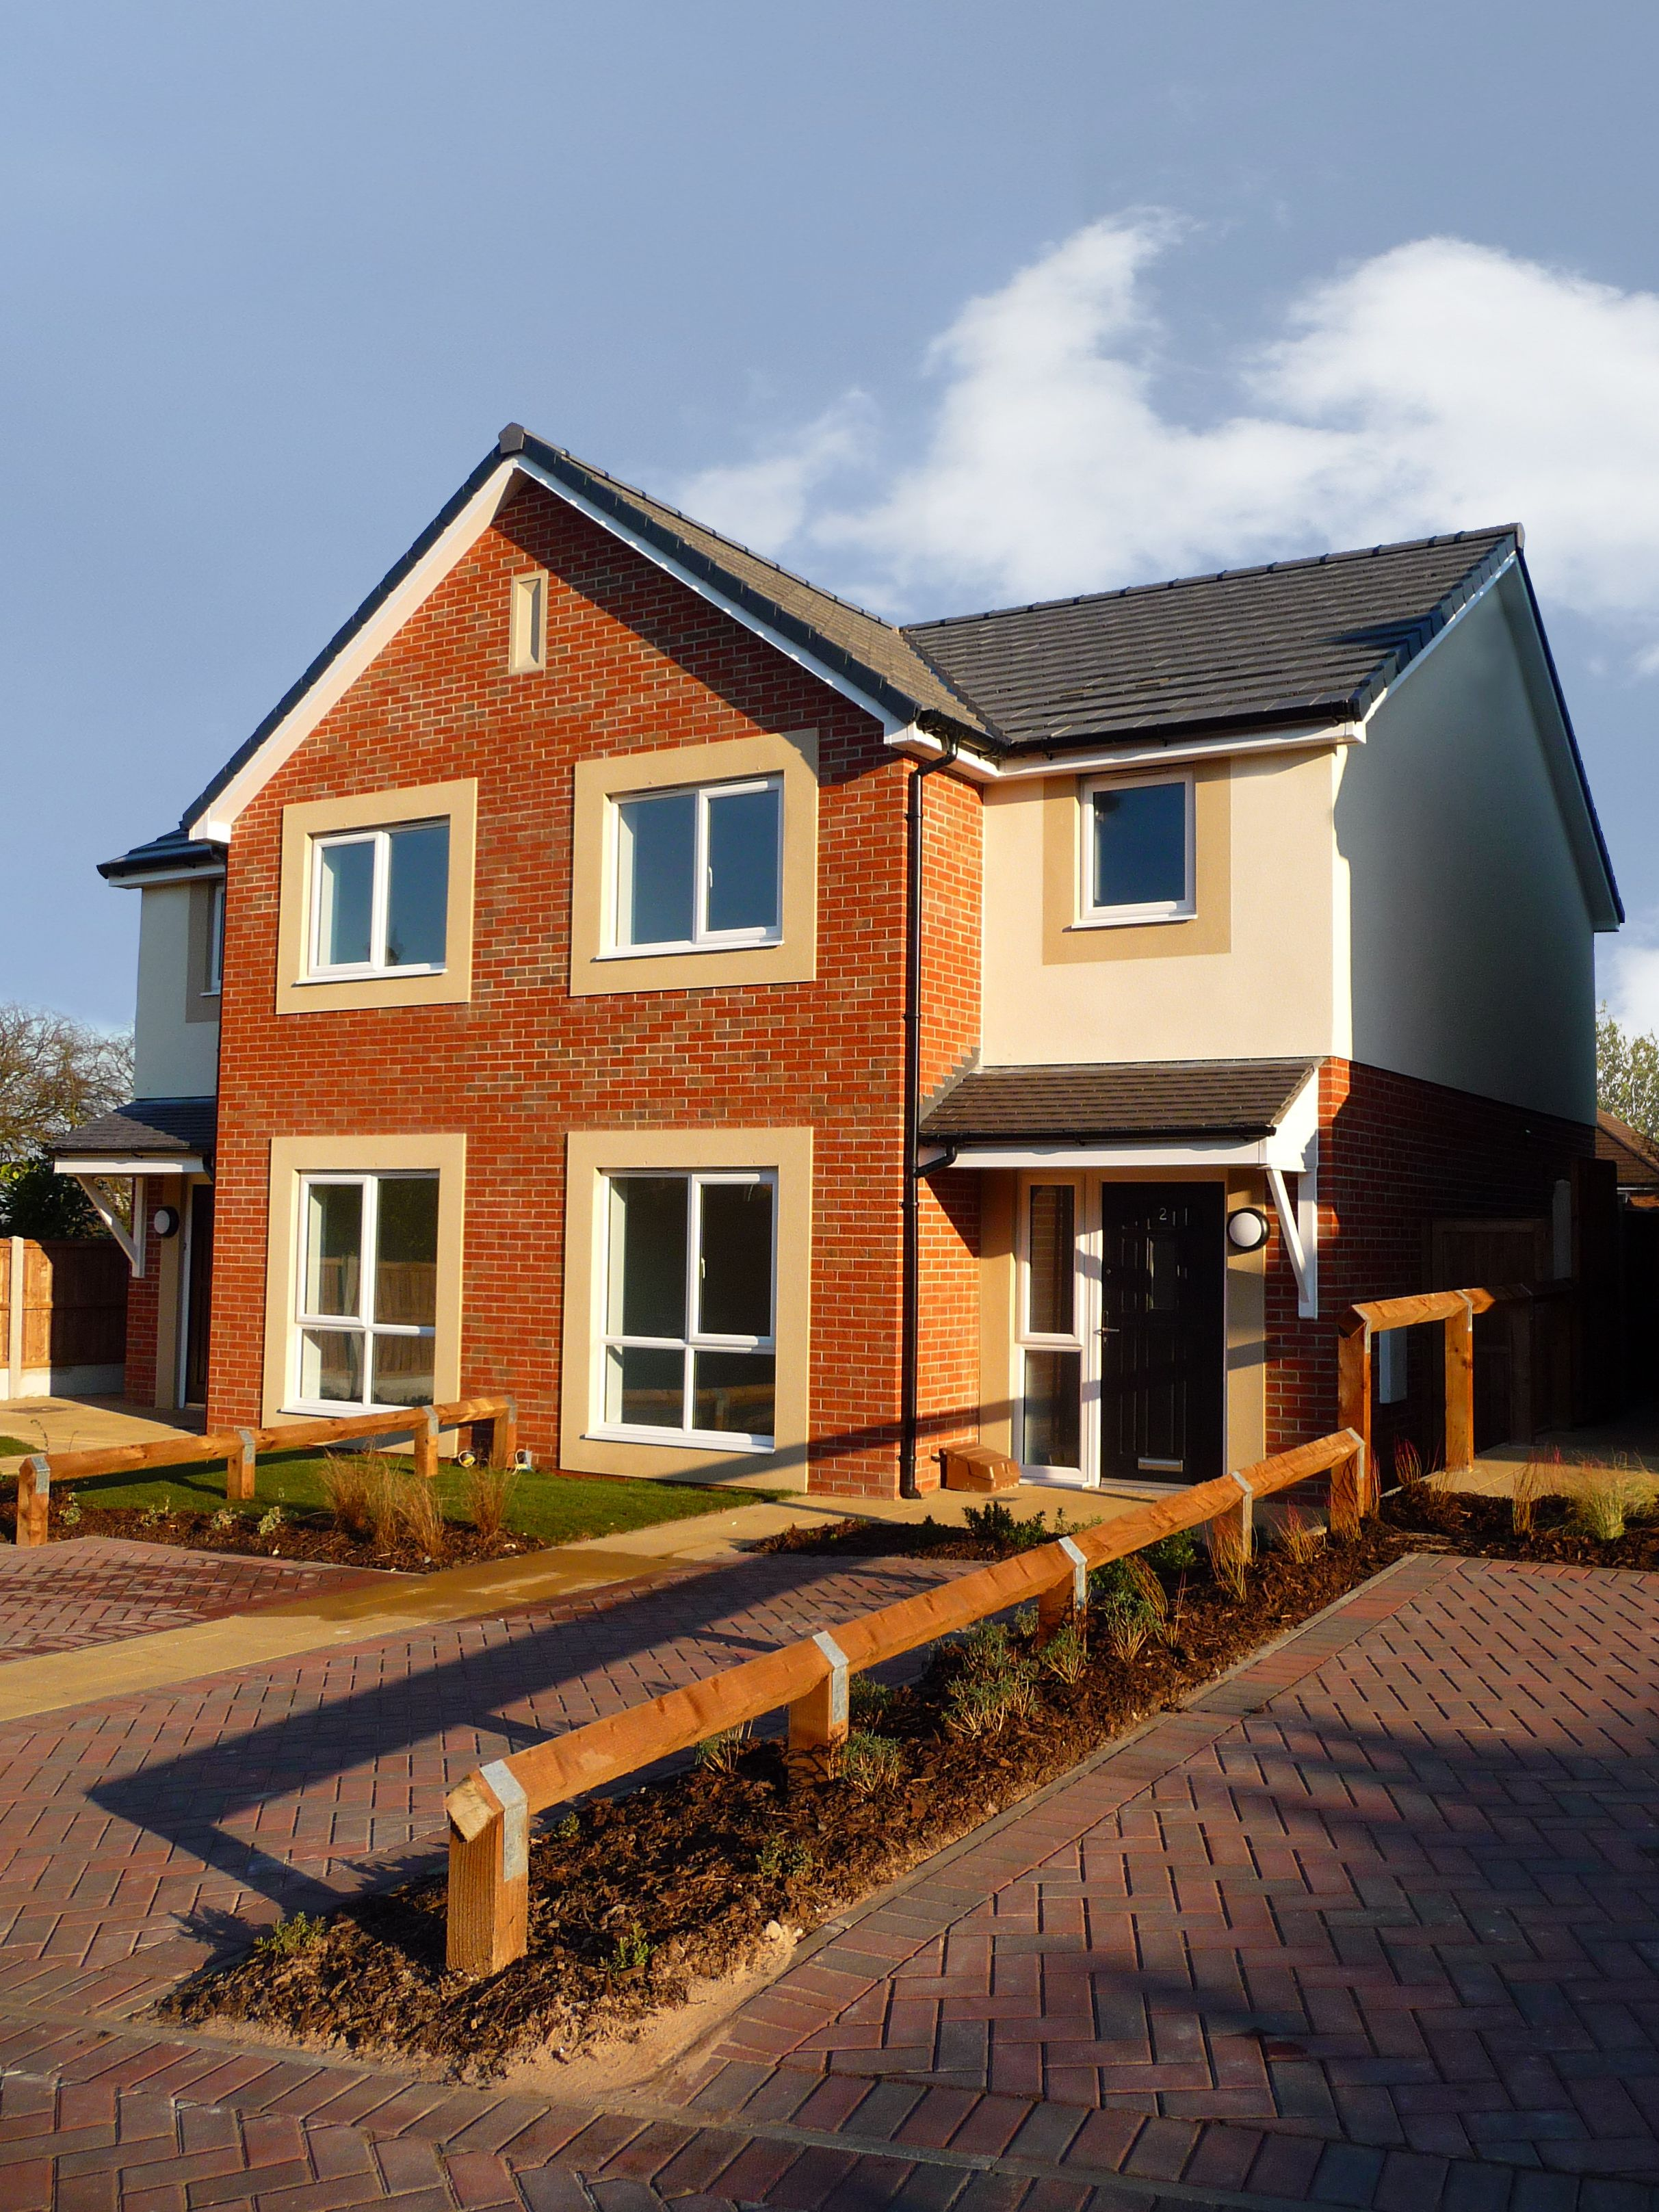 Lodge Farm Runcorn The Scheme Provides 6 Semi Detached Affordable Houses For Shared Ownership On Behalf Of Riv Affordable Housing Social Housing House Styles